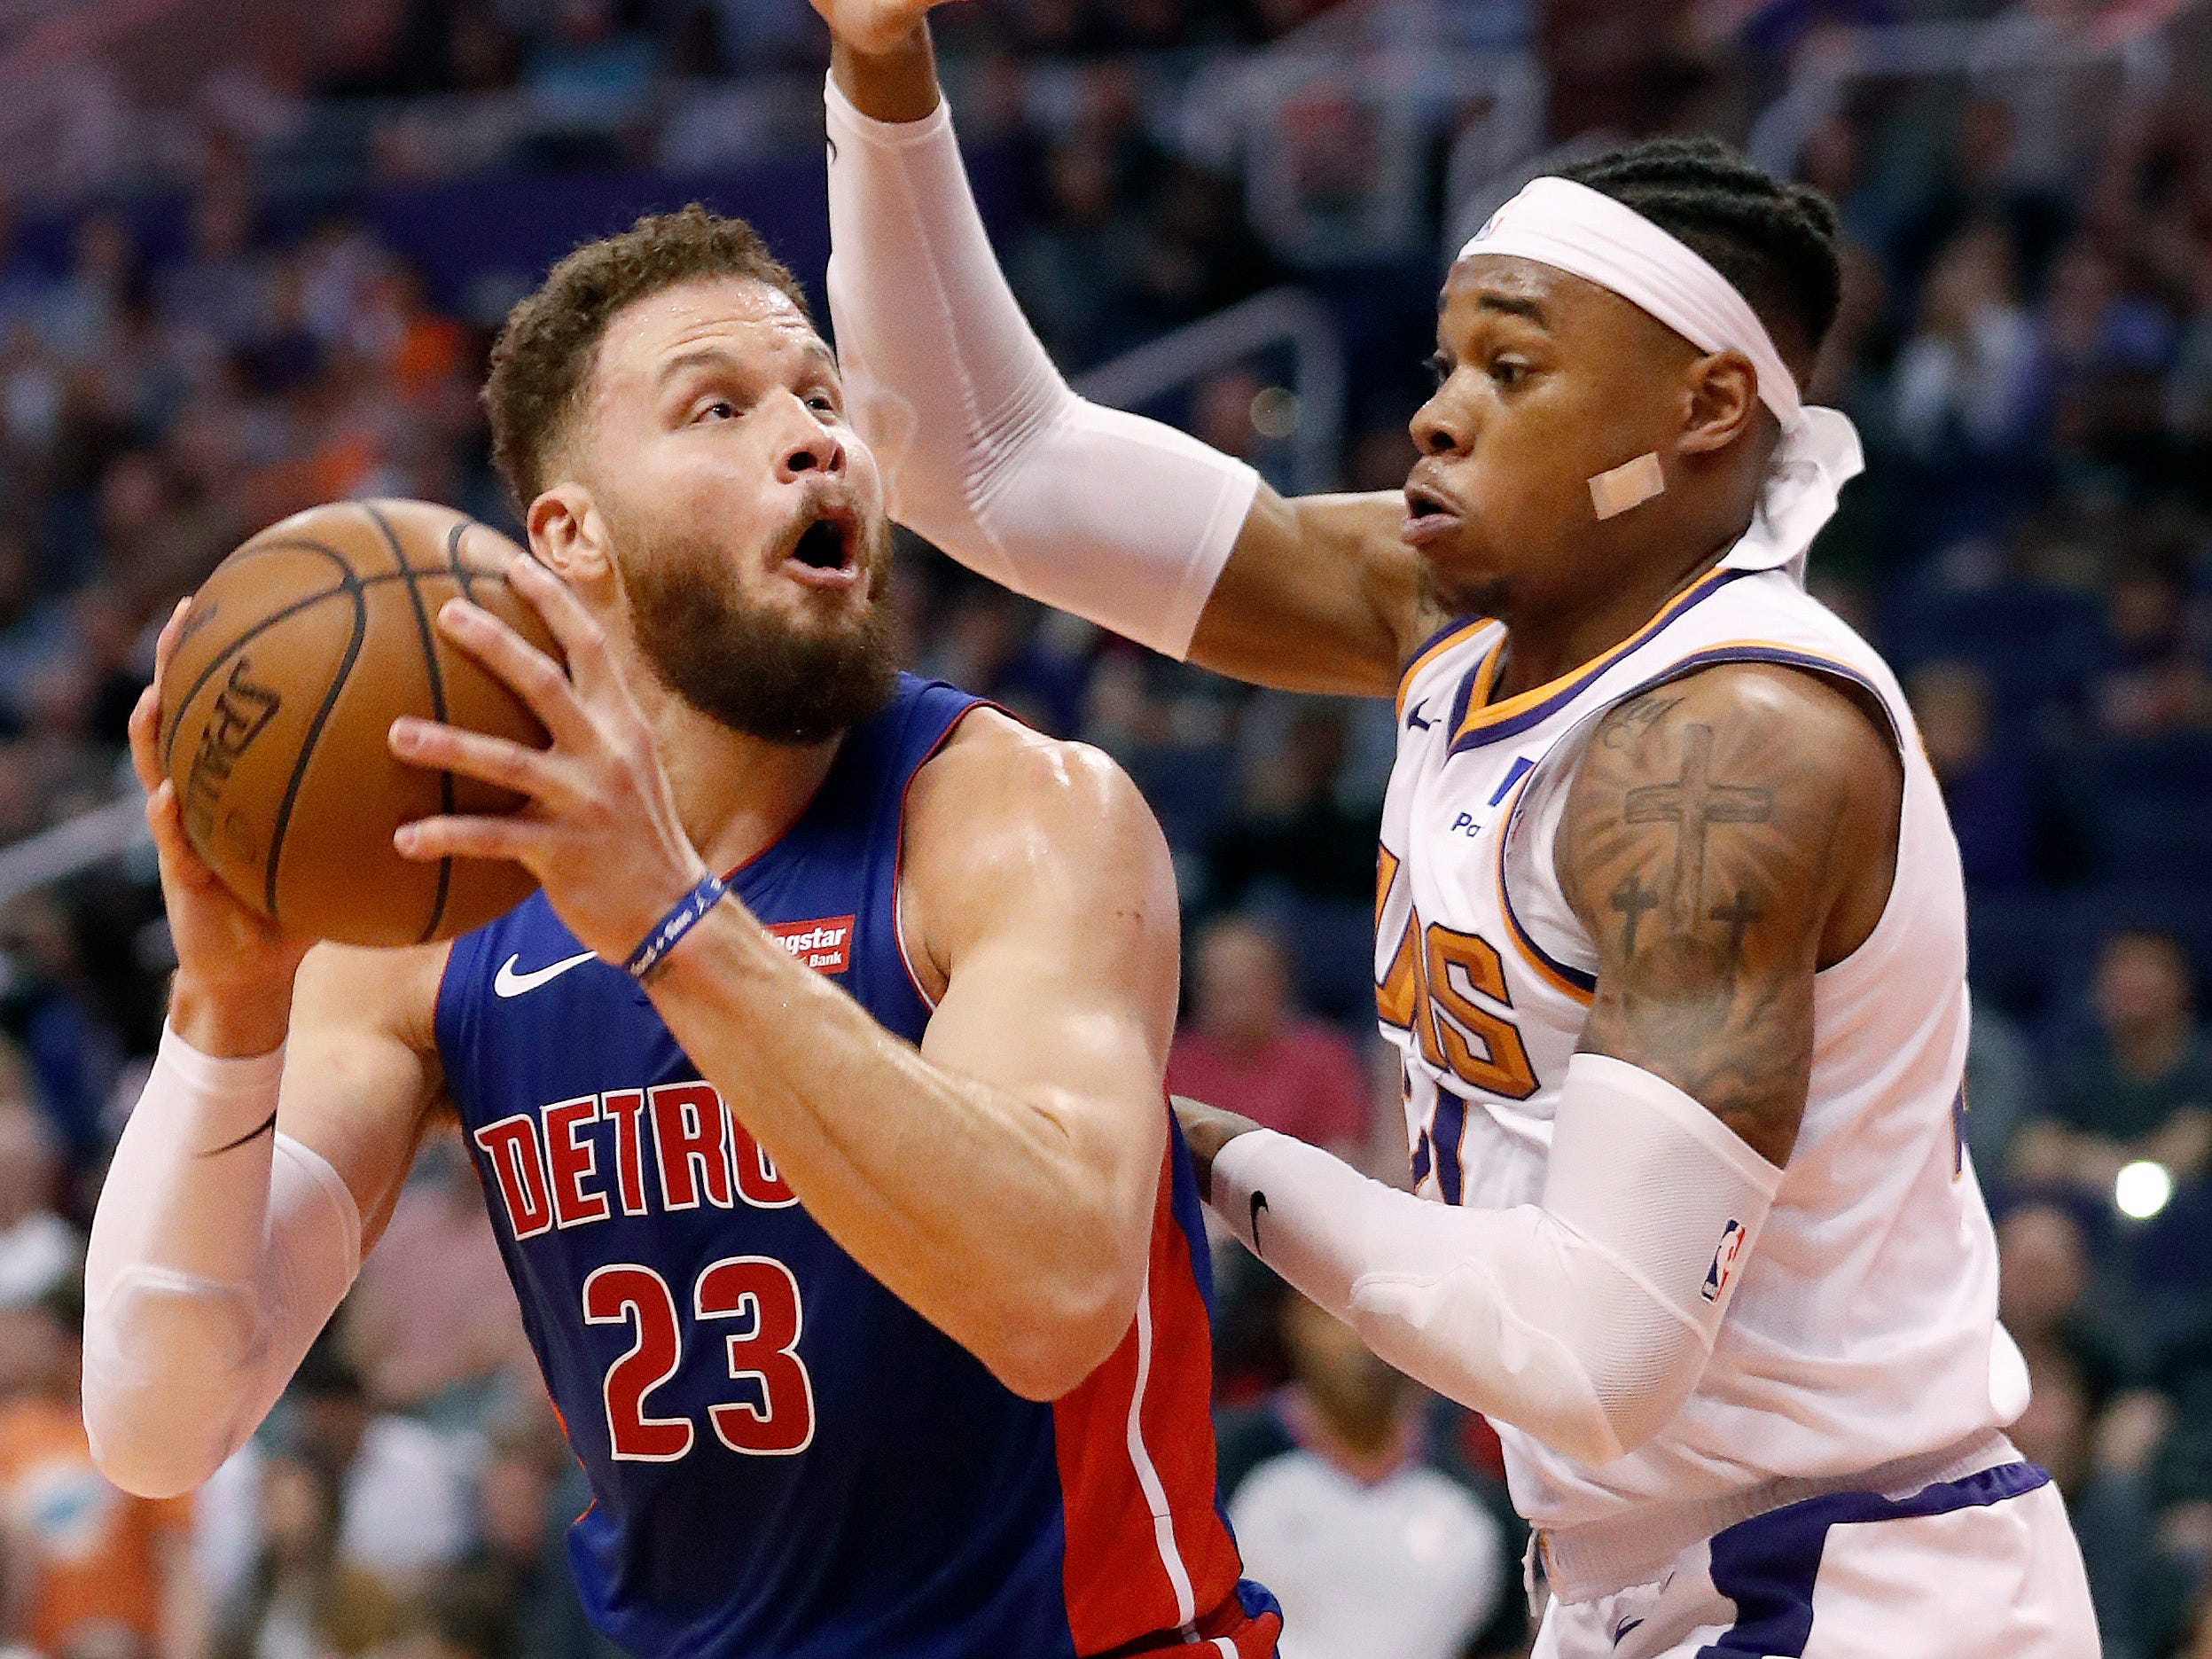 Detroit Pistons forward Blake Griffin (23) shoots over Phoenix Suns forward Richaun Holmes during the first half of an NBA basketball game, Thursday, March 21, 2019, in Phoenix.